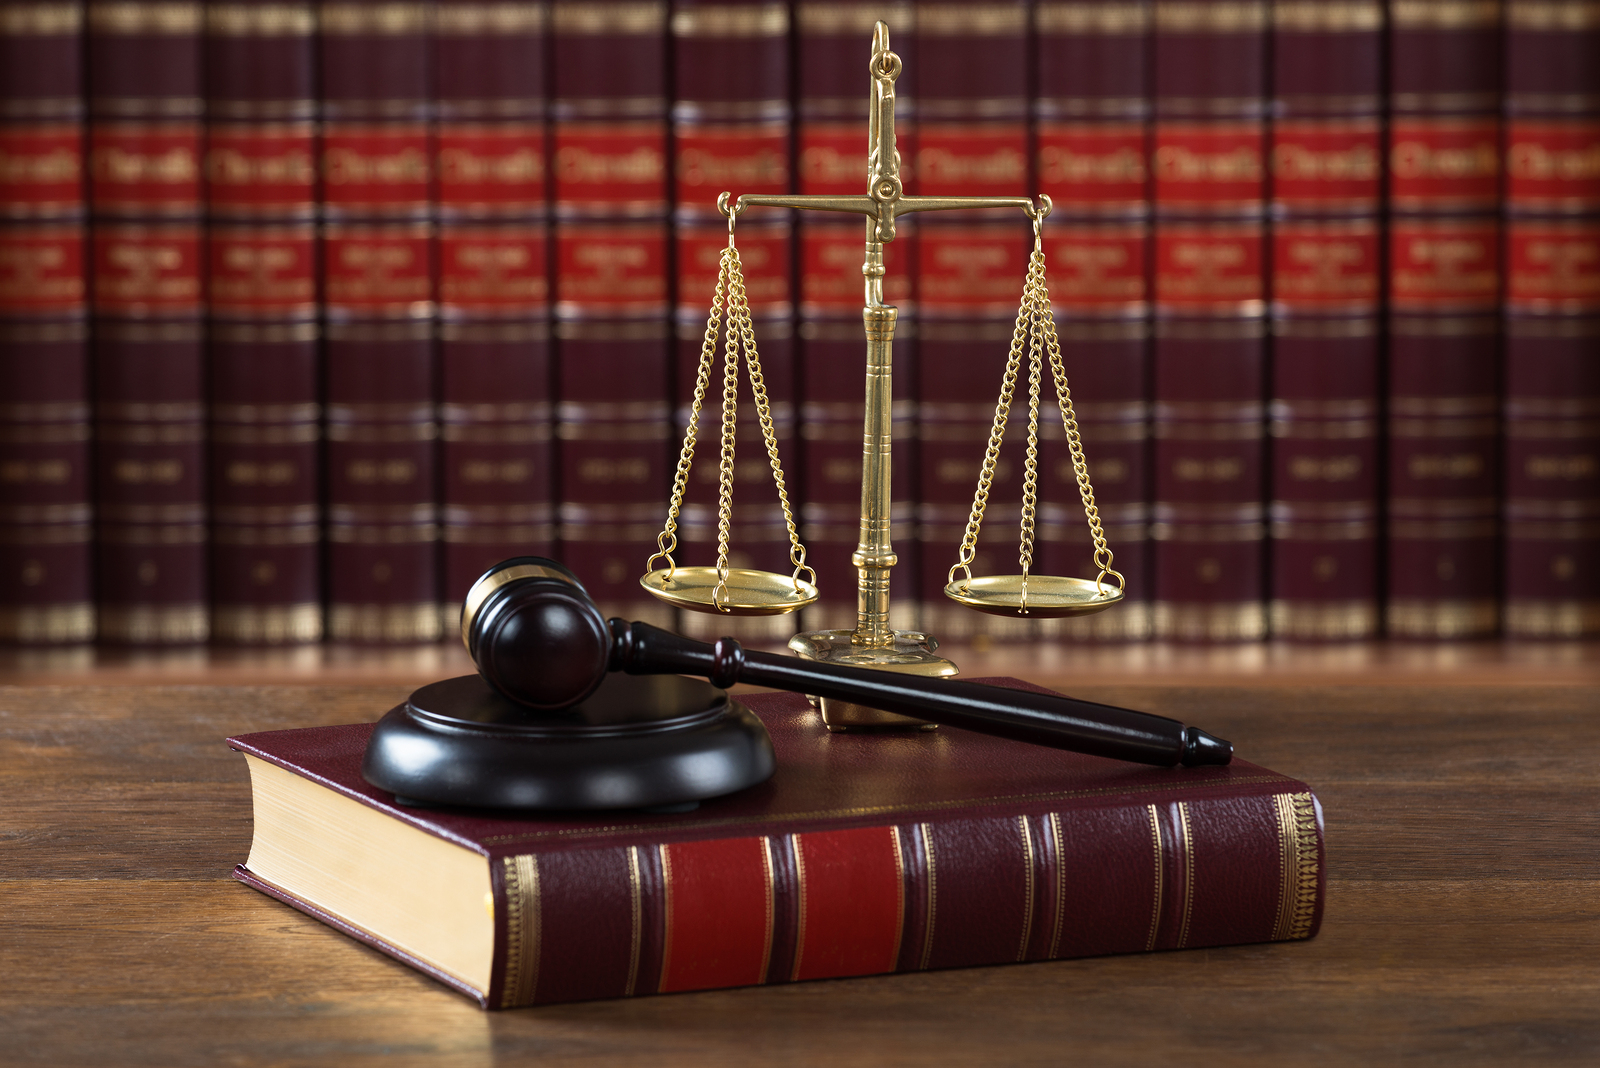 bigstock-Mallet-And-Legal-Book-With-Jus-116961032.jpg